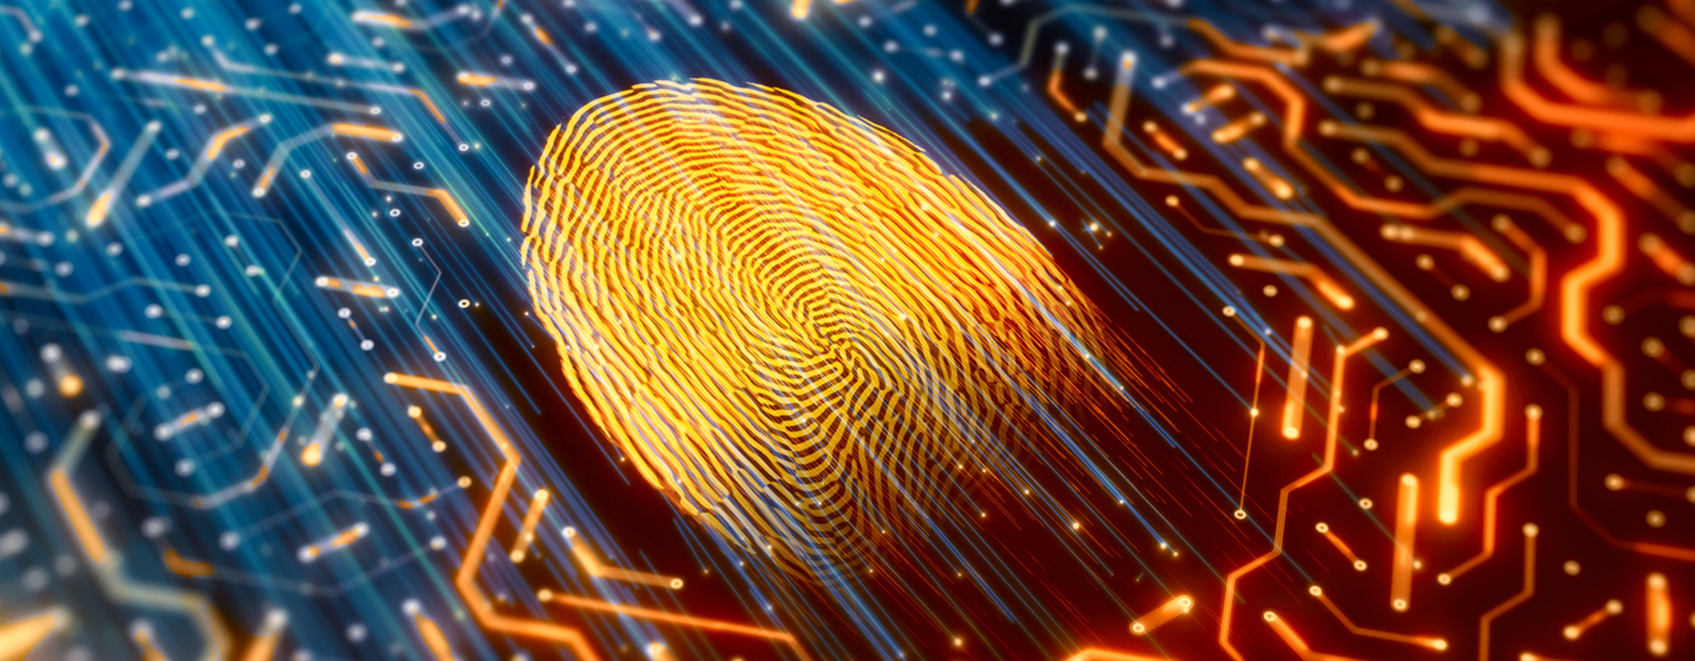 computer circuitboard, with glowing fingerprint on it